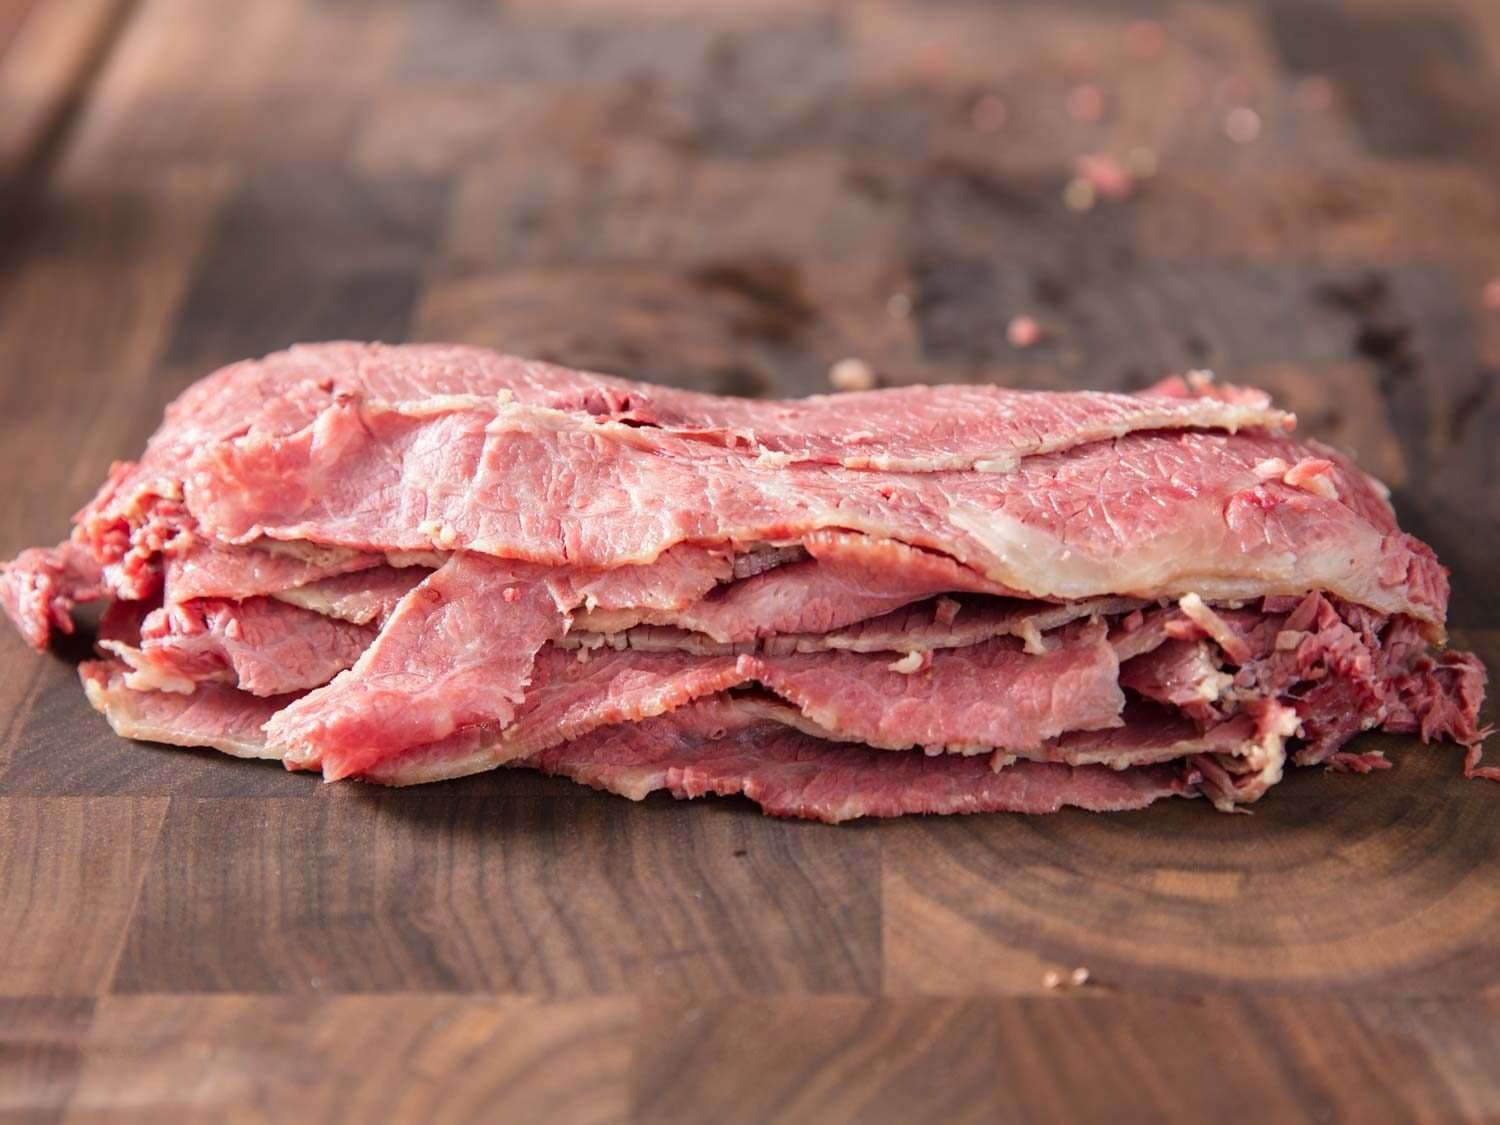 Sliced corned beef from Jewish deli